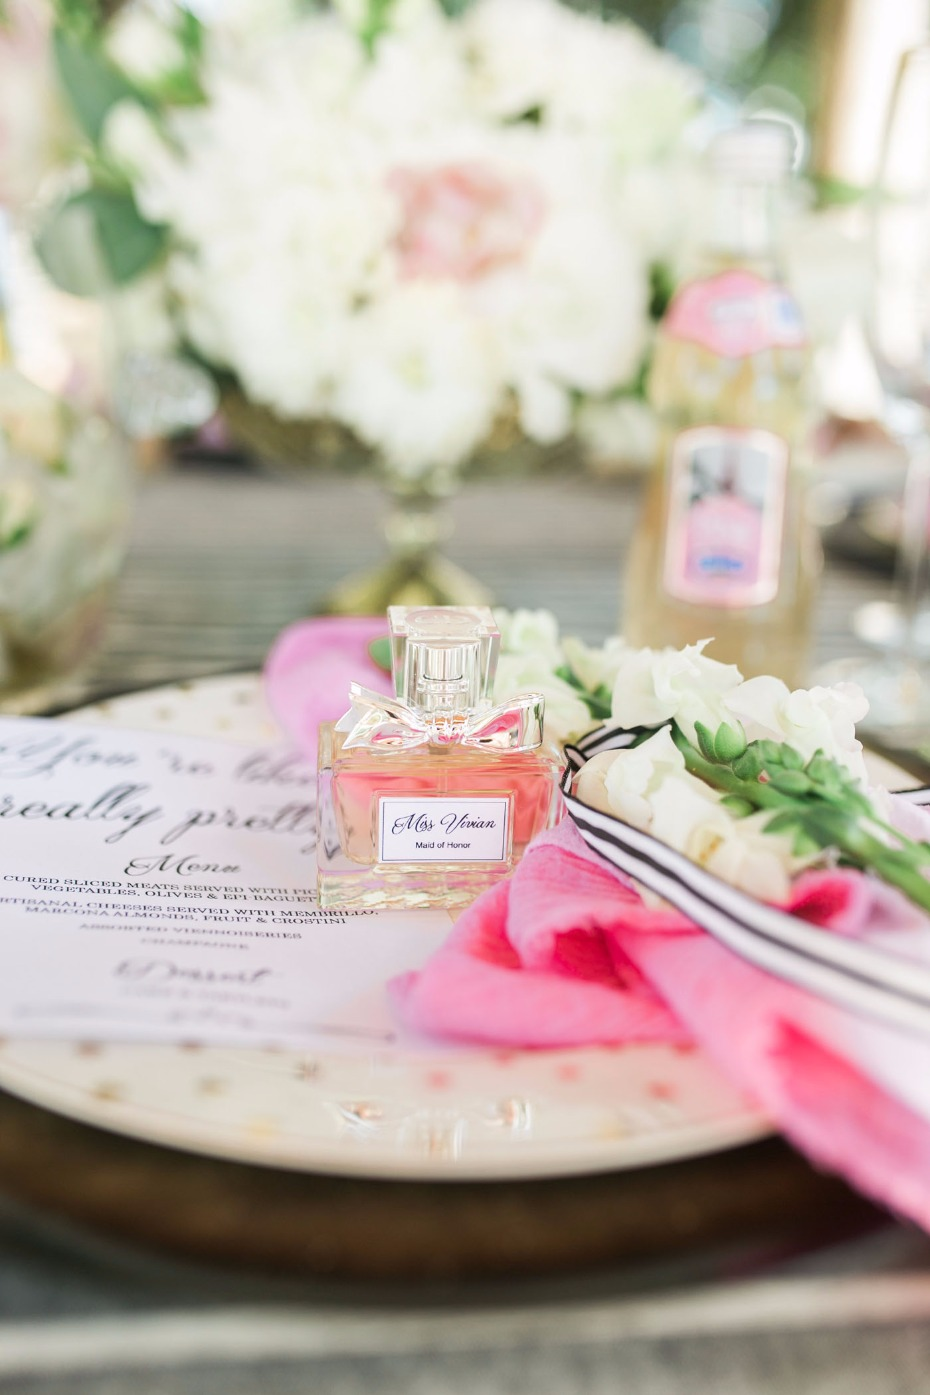 Perfume bottle favors with custom labels